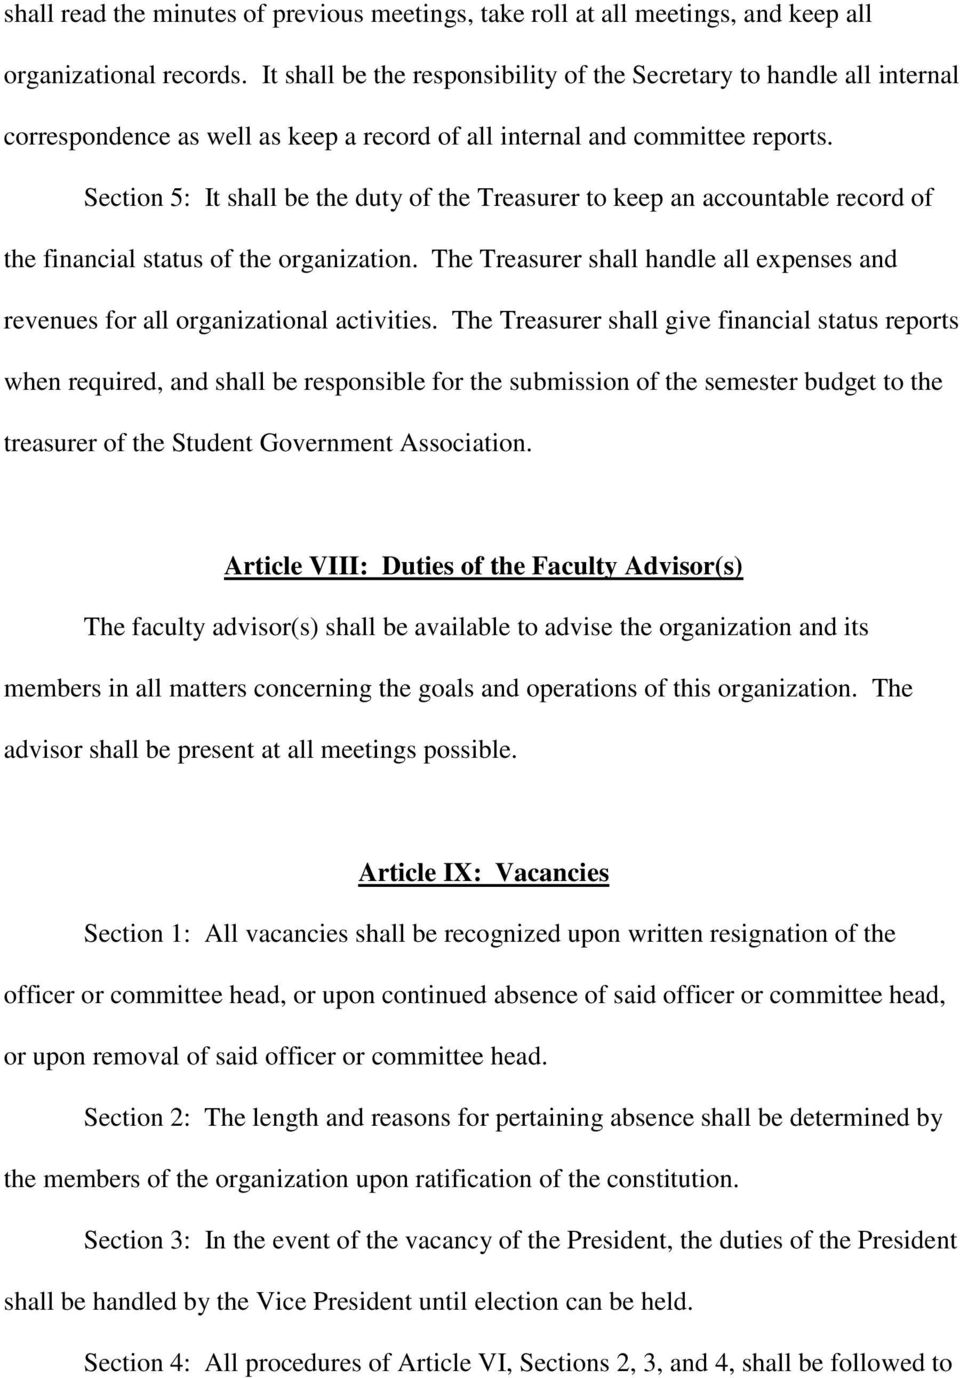 Section 5: It shall be the duty of the Treasurer to keep an accountable record of the financial status of the organization.